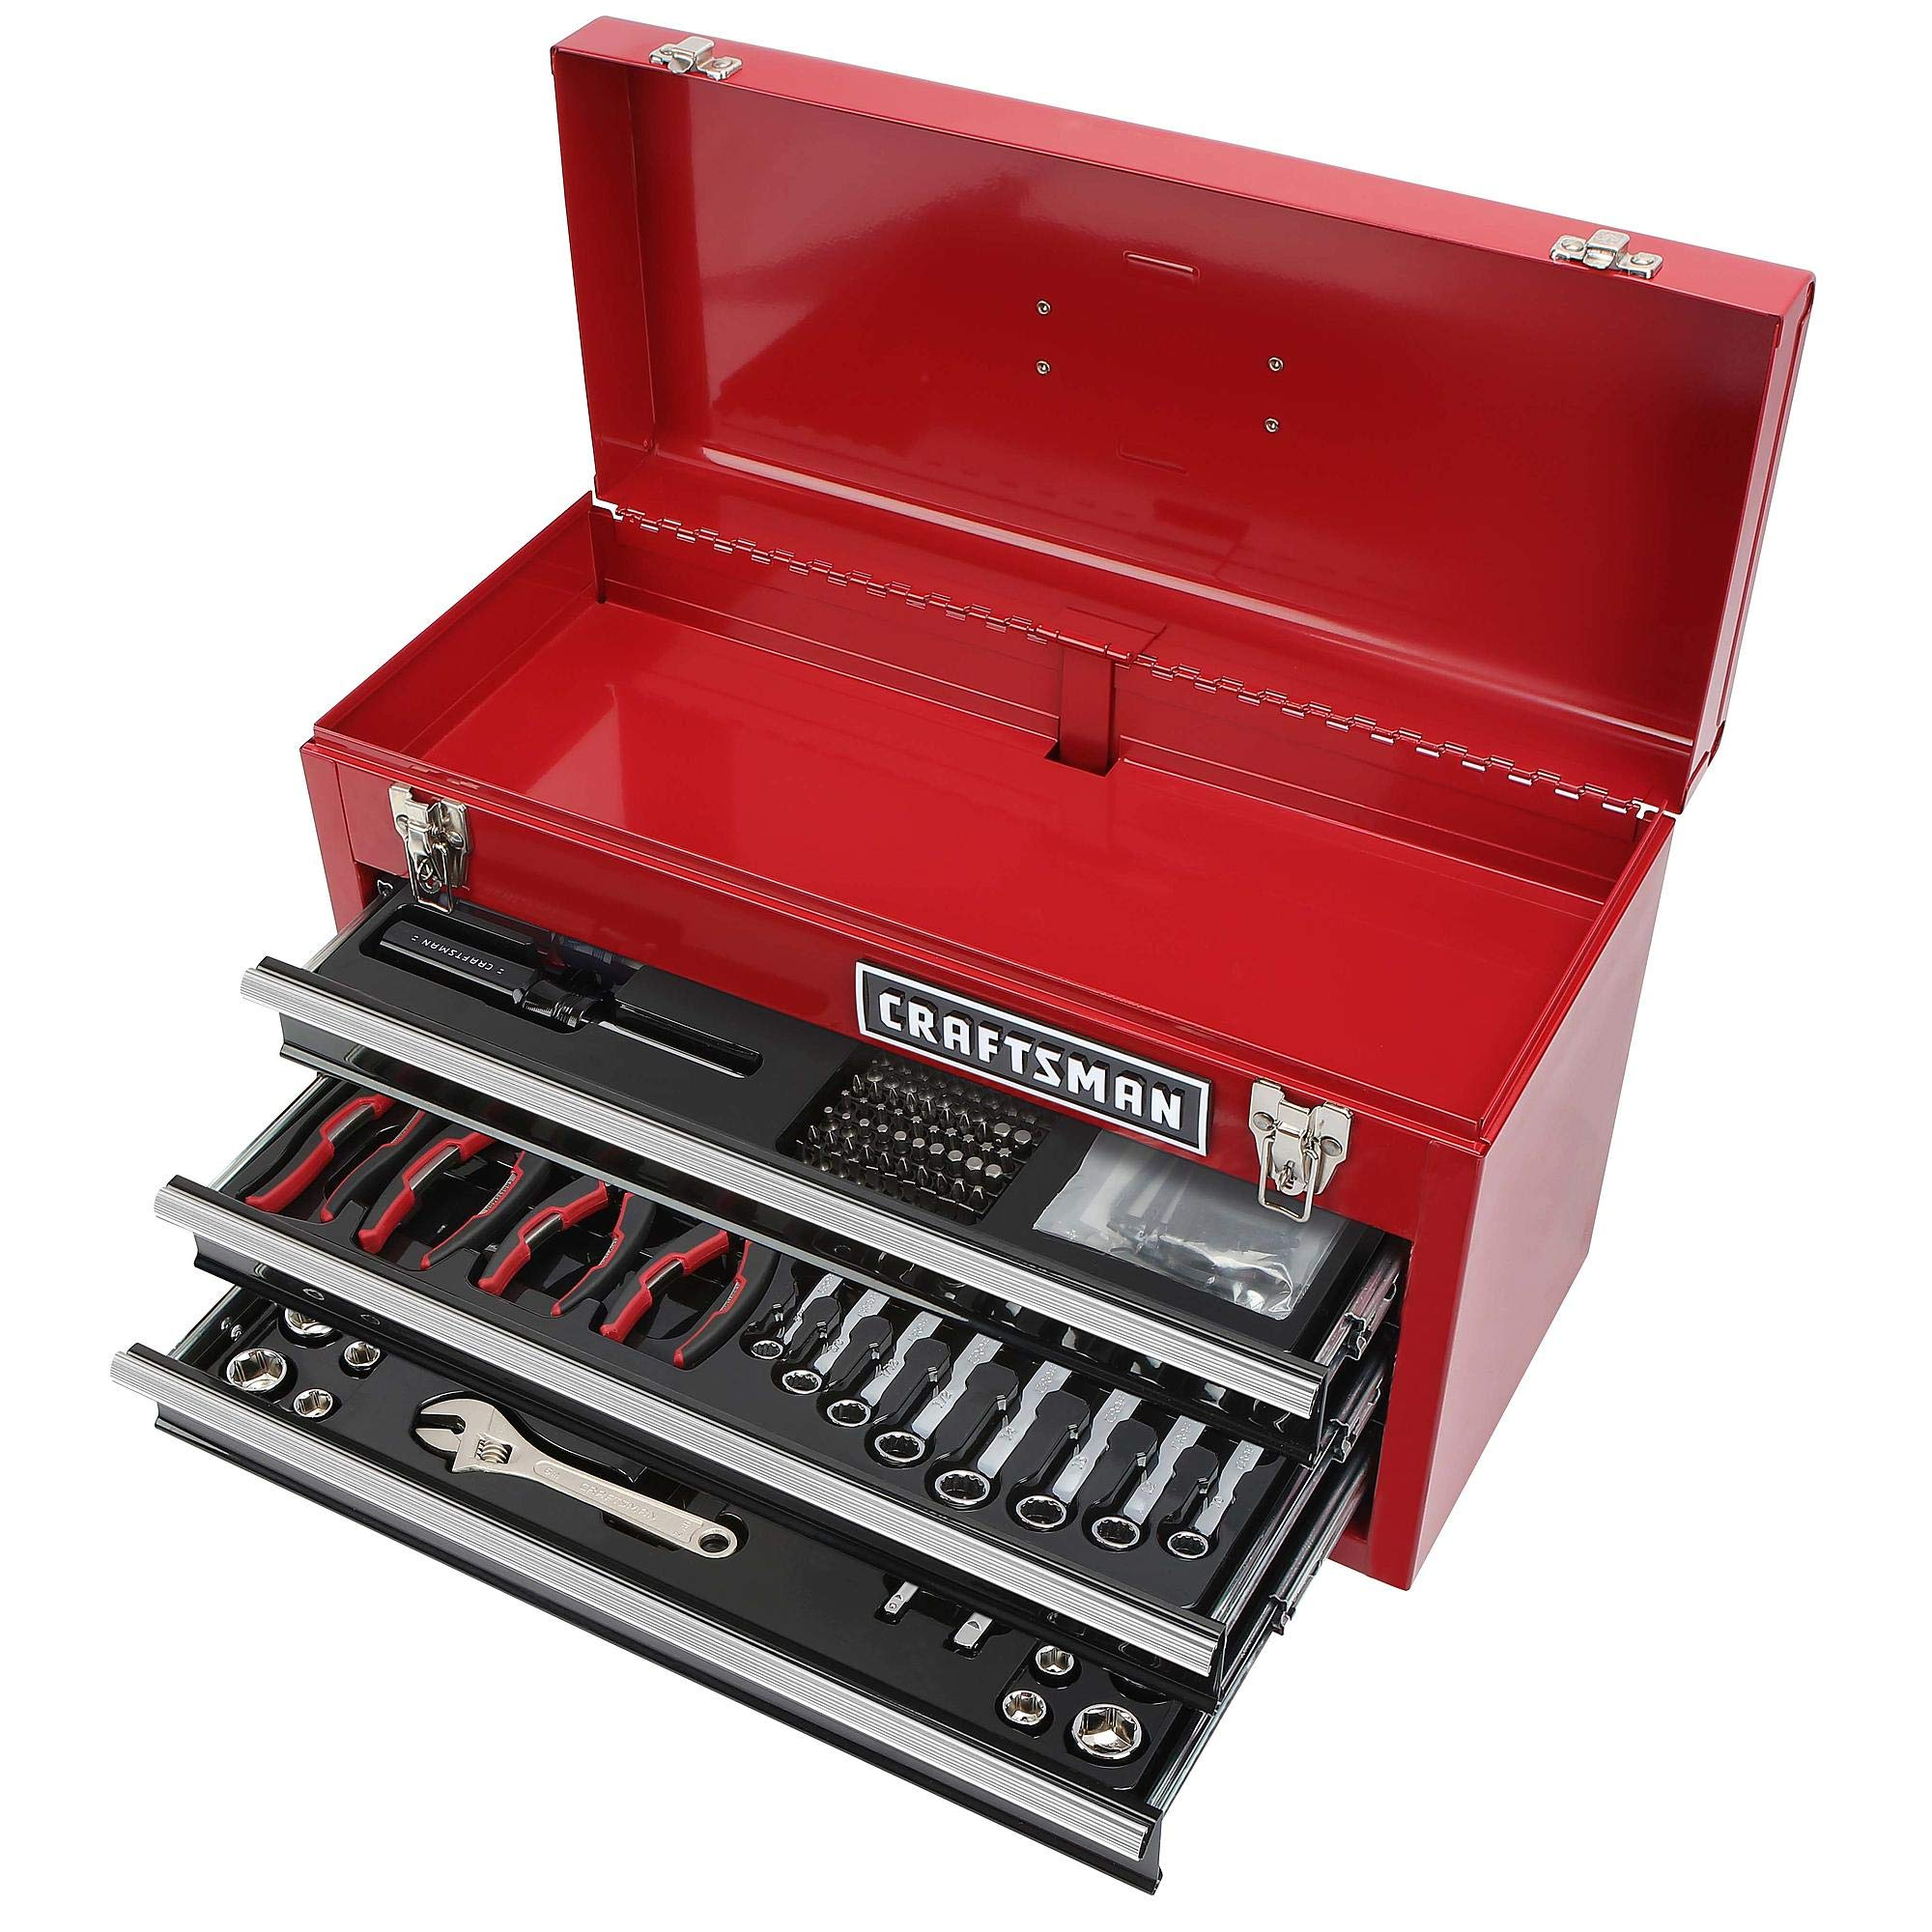 CRAFTSMAN 178 TOOL SET WITH CRAFTSMAN 3 DRAWER TOOL BOX by Craftsman